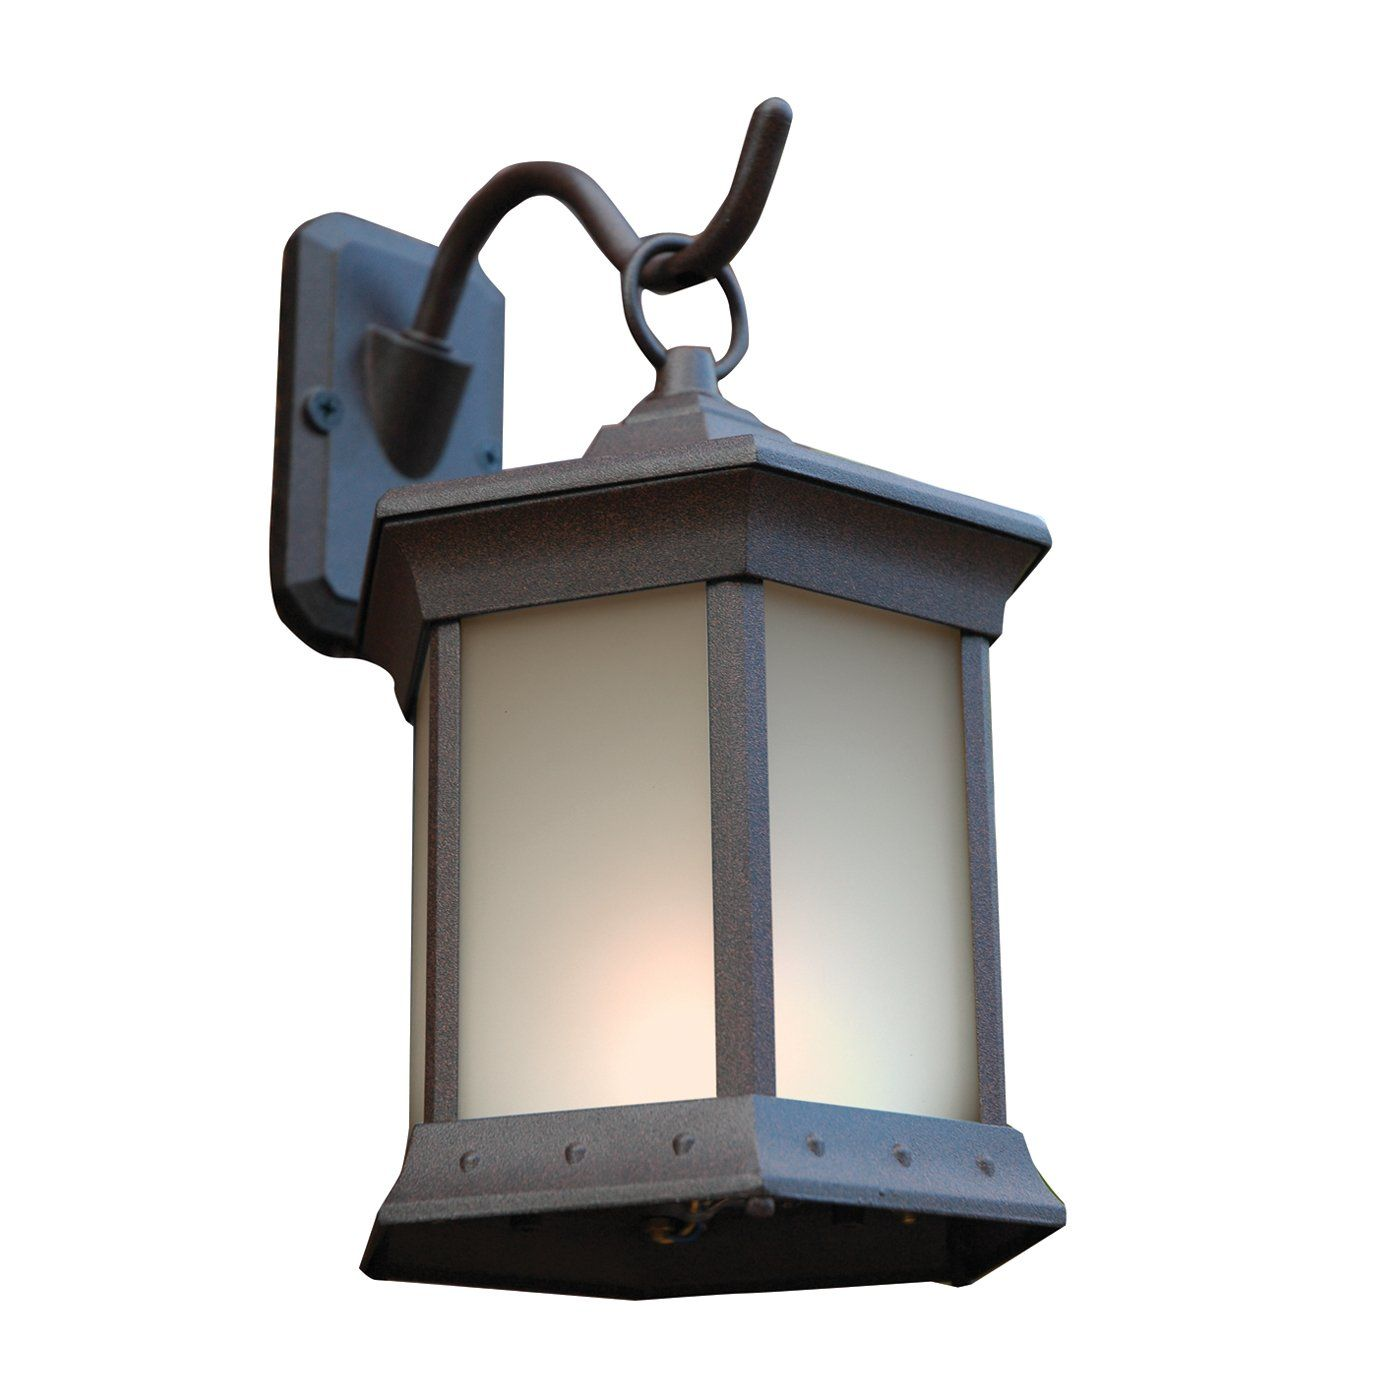 Solar Outdoor Lighting Wall Mount Shop outdoor greatroom company solar 2 wall mounting solar light kit shop outdoor greatroom company solar 2 wall mounting solar light kit at the mine browse our outdoor sconces all with free shipping and best price workwithnaturefo